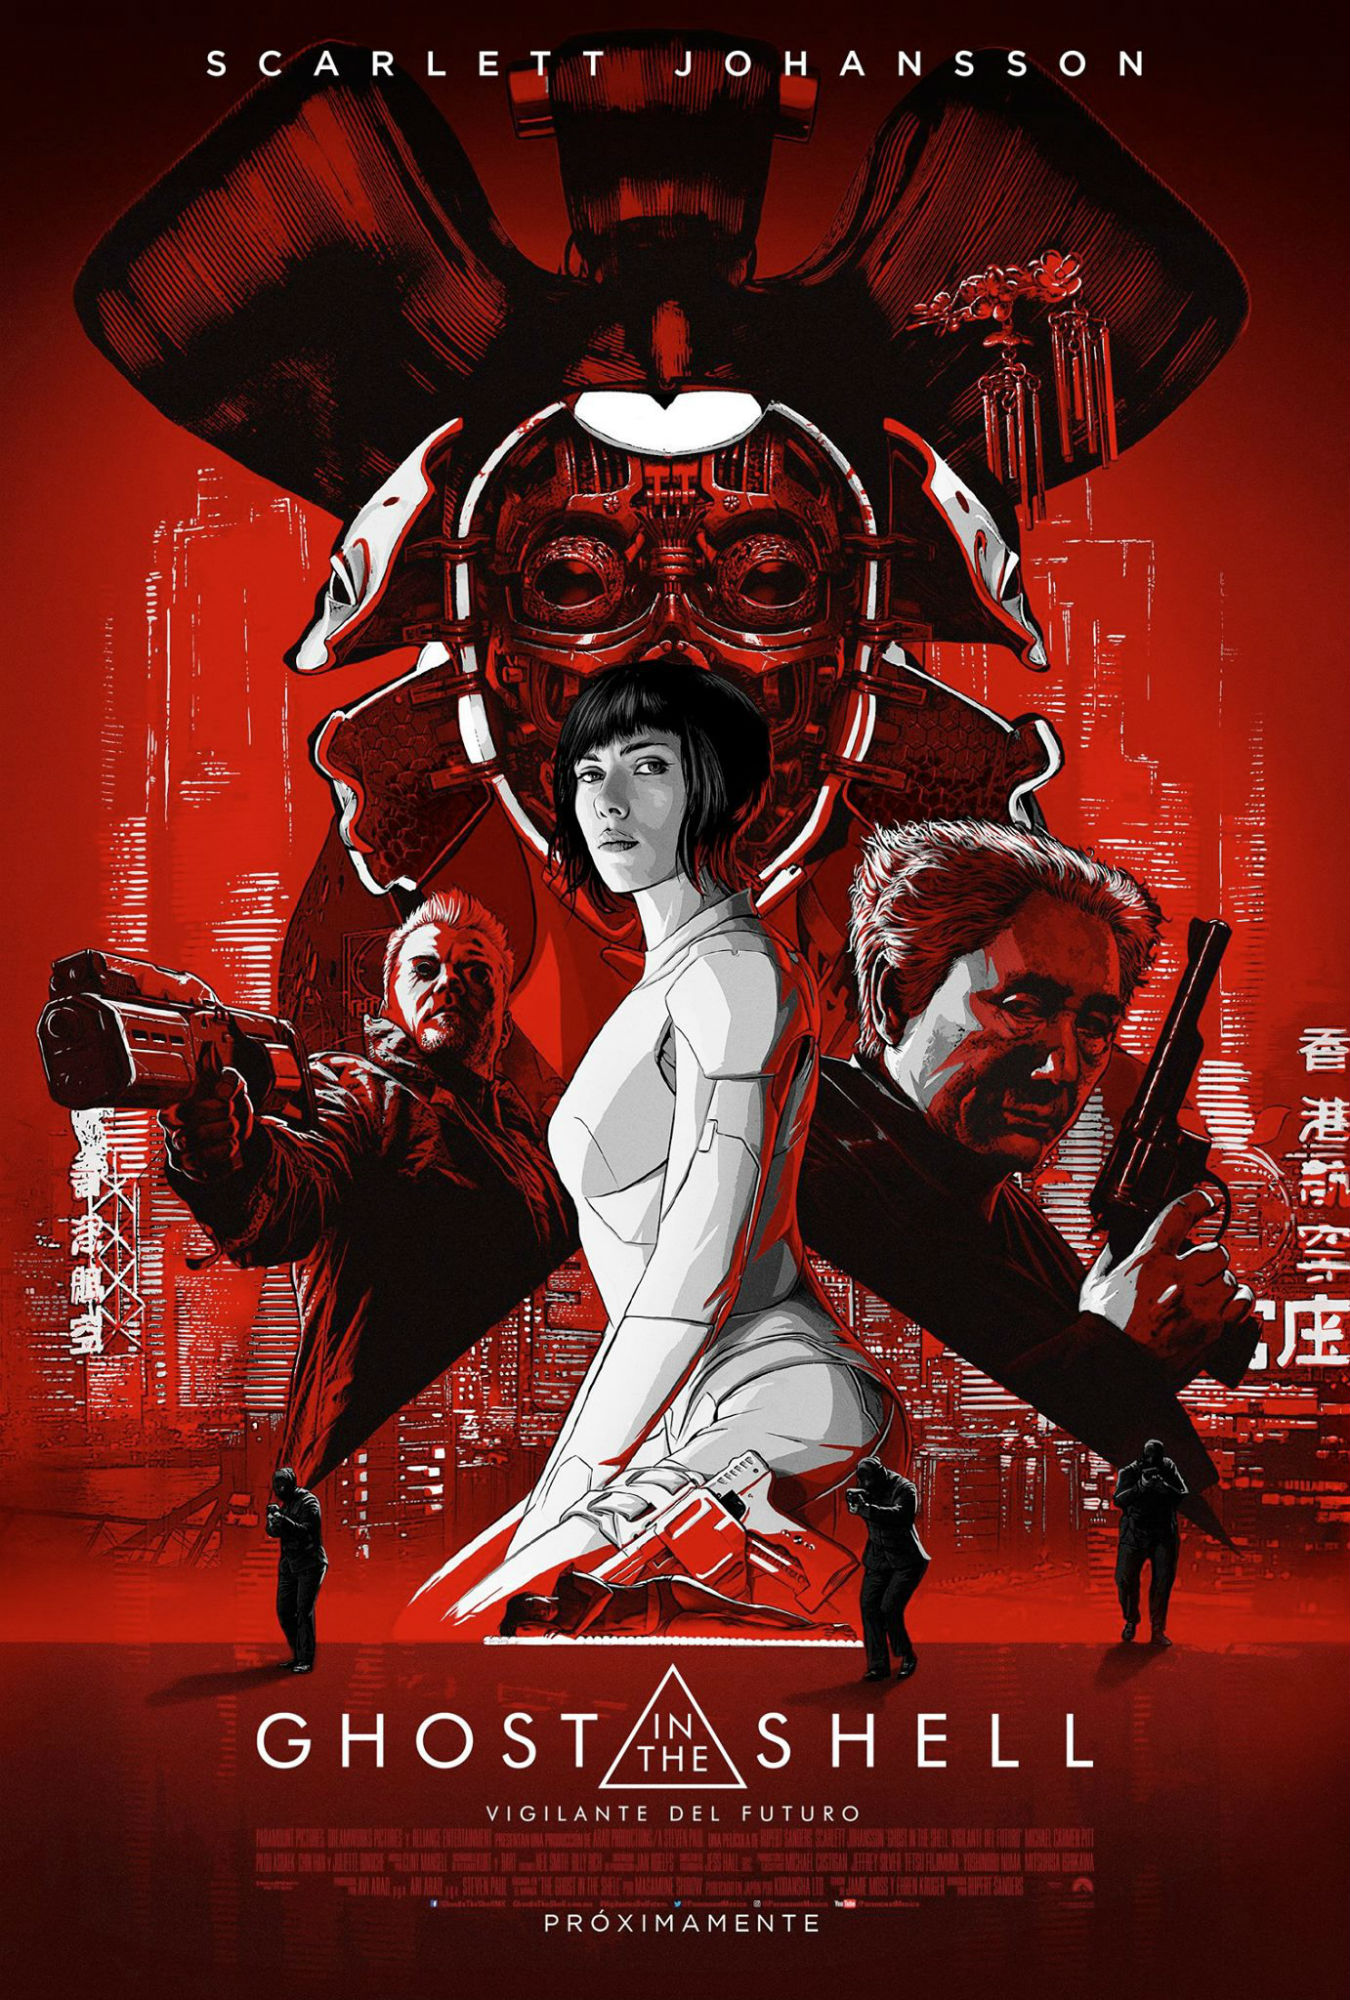 Viral Clip For Ghost In The Shell Hints At A Stolen Identity, Striking New Poster Arrives